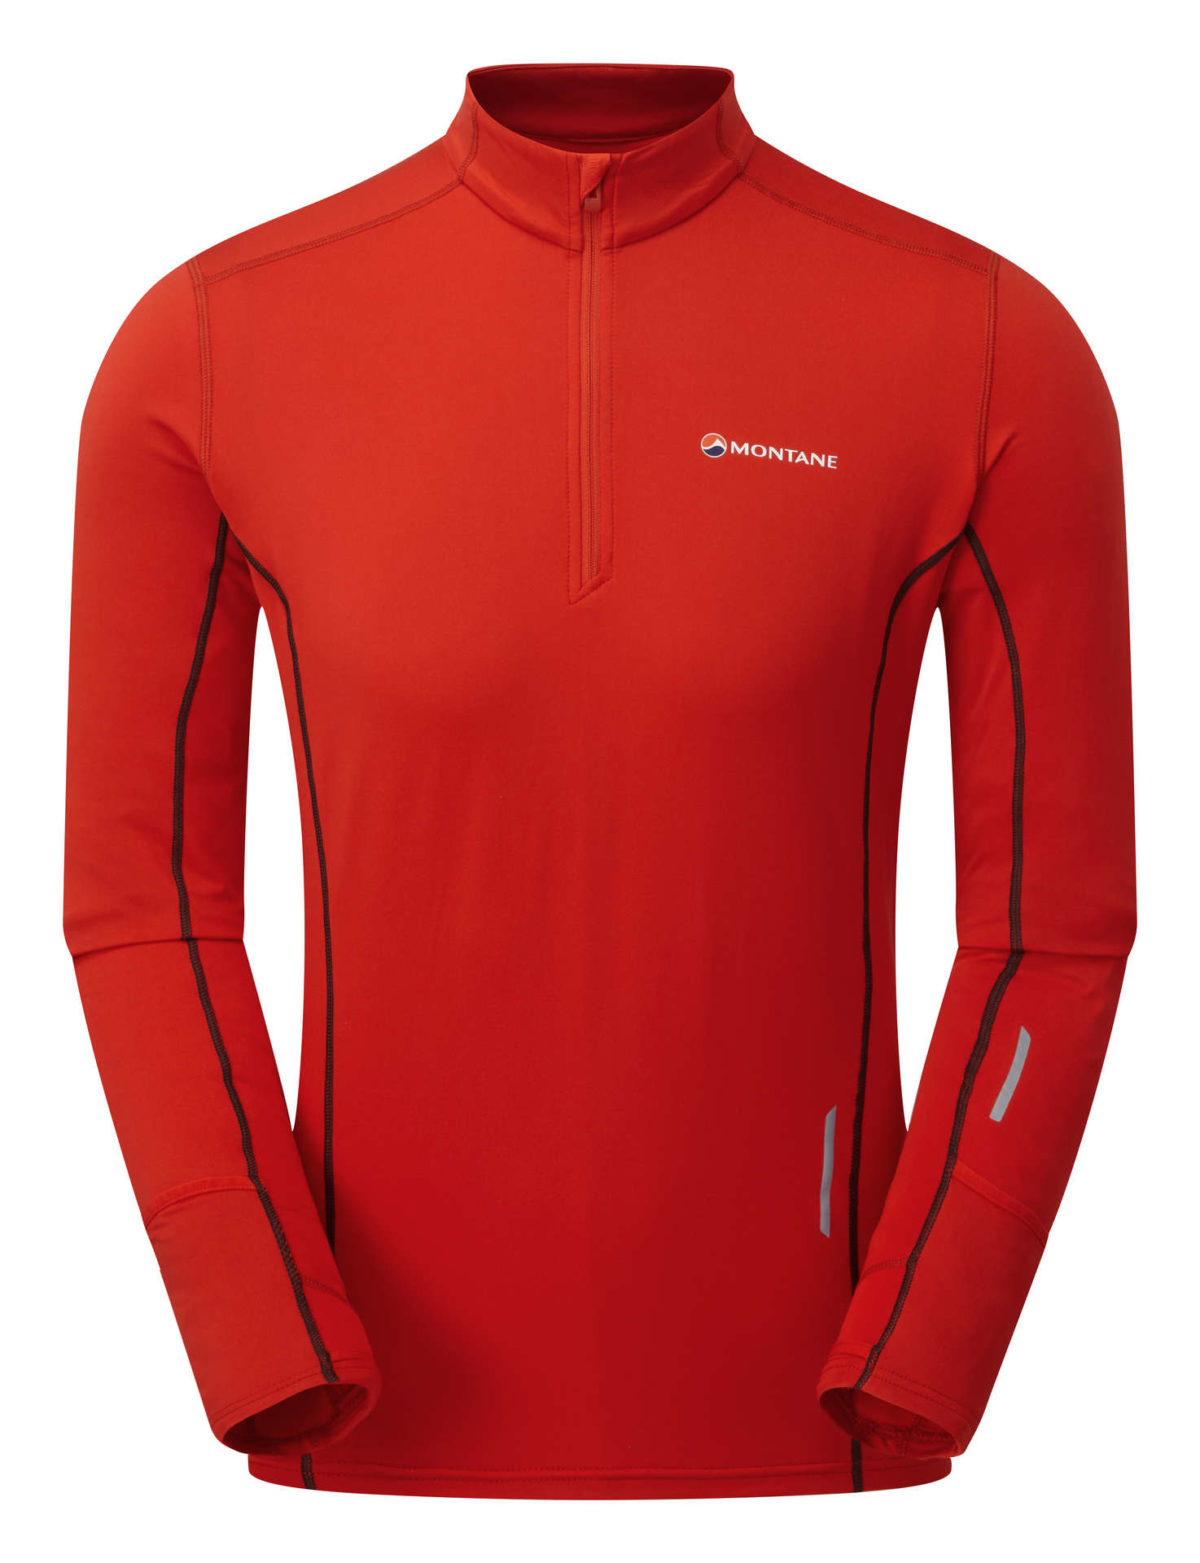 Montane Dragon - zip long sleeved top mid or base layer